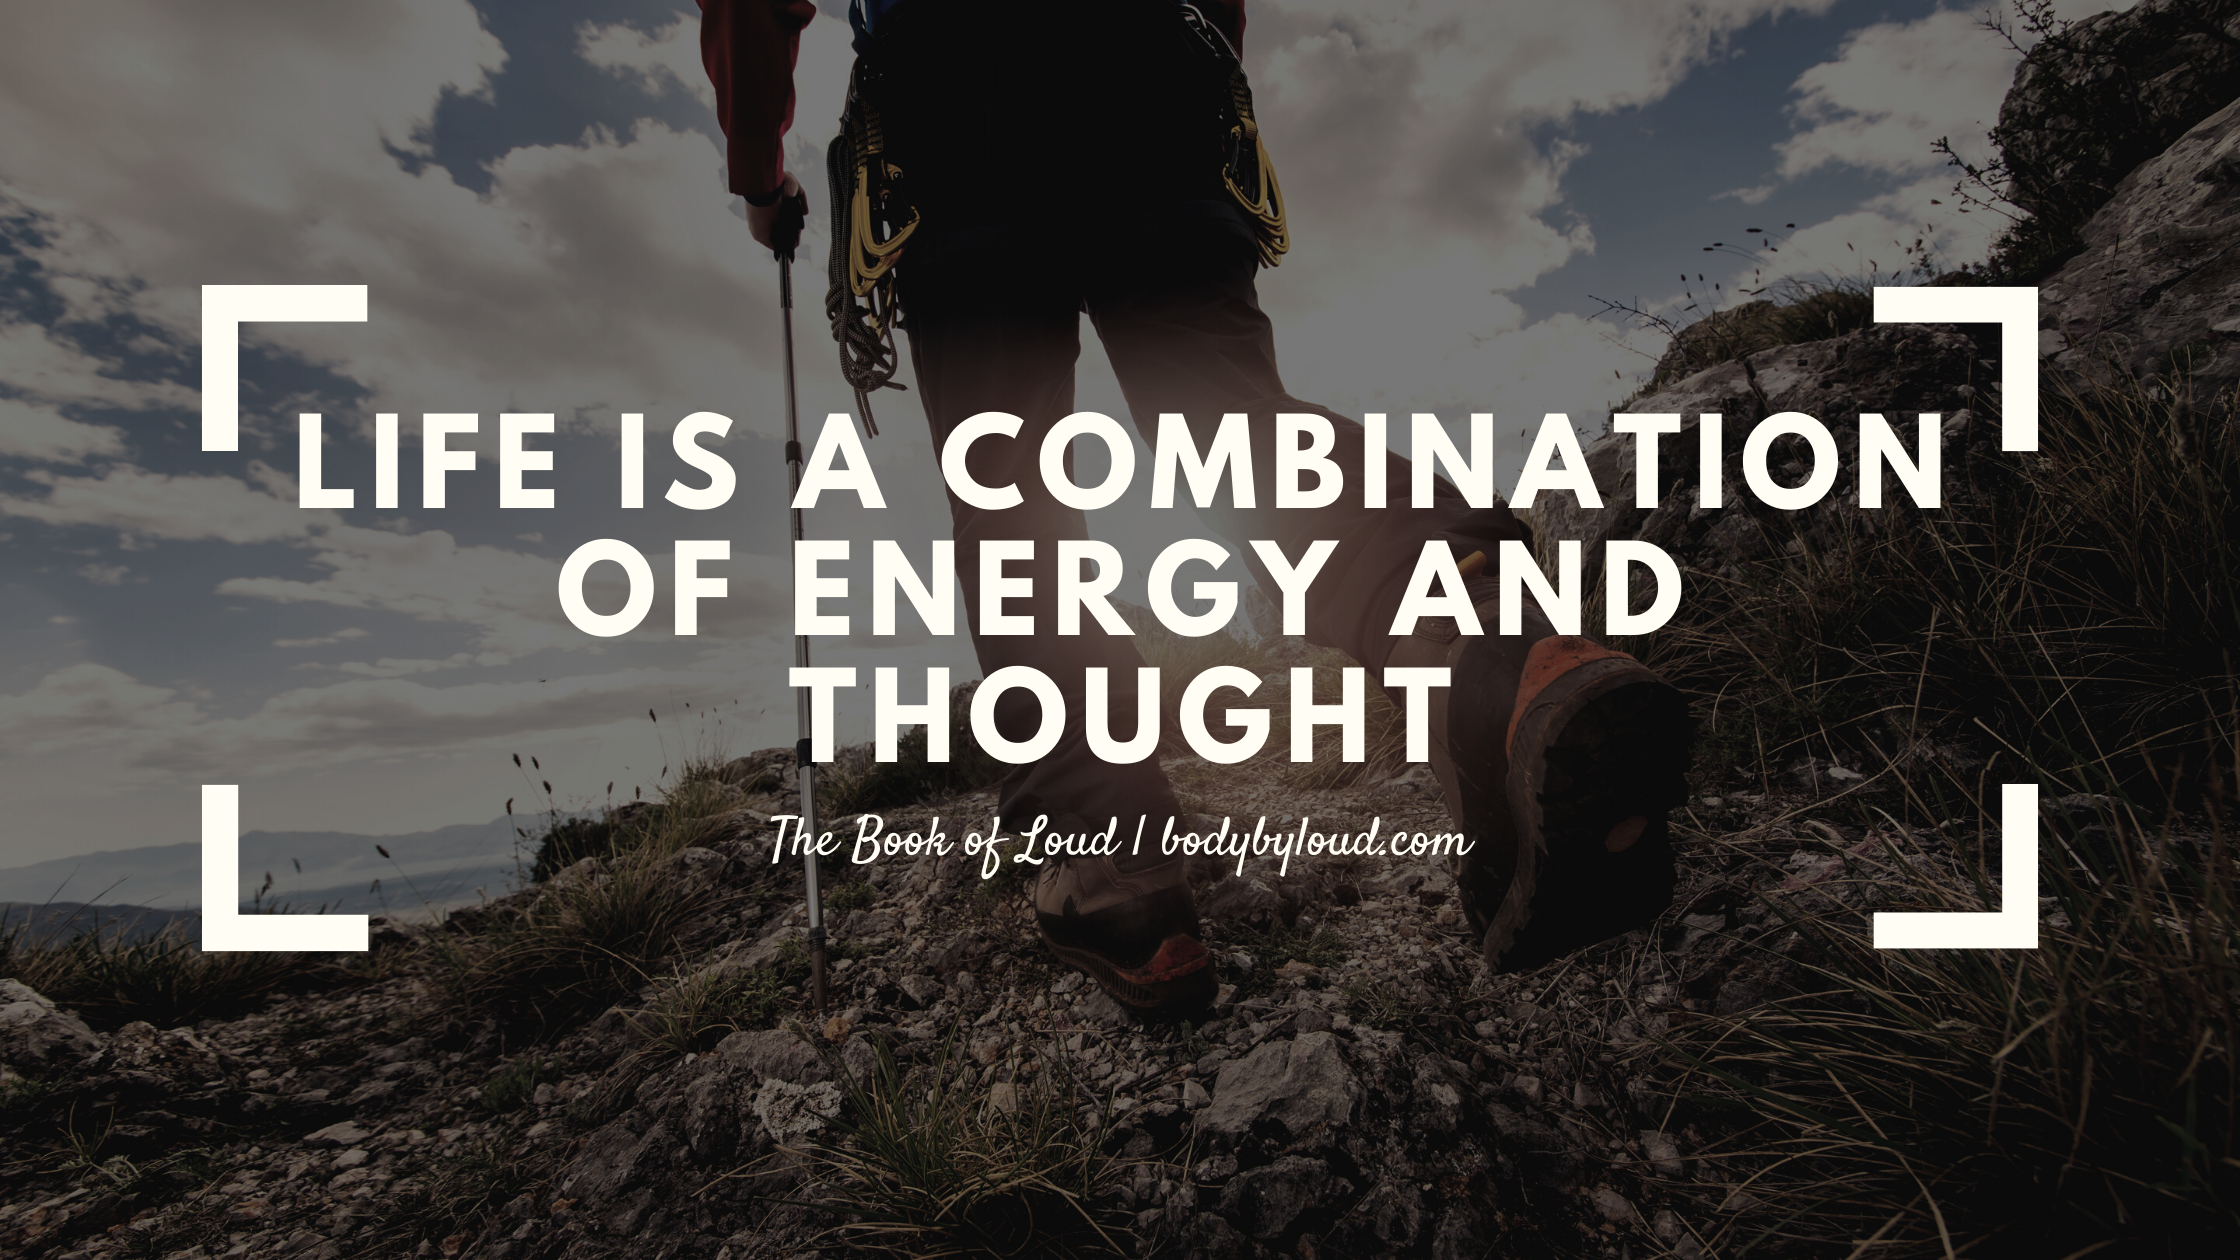 life is a combination of energy and thought